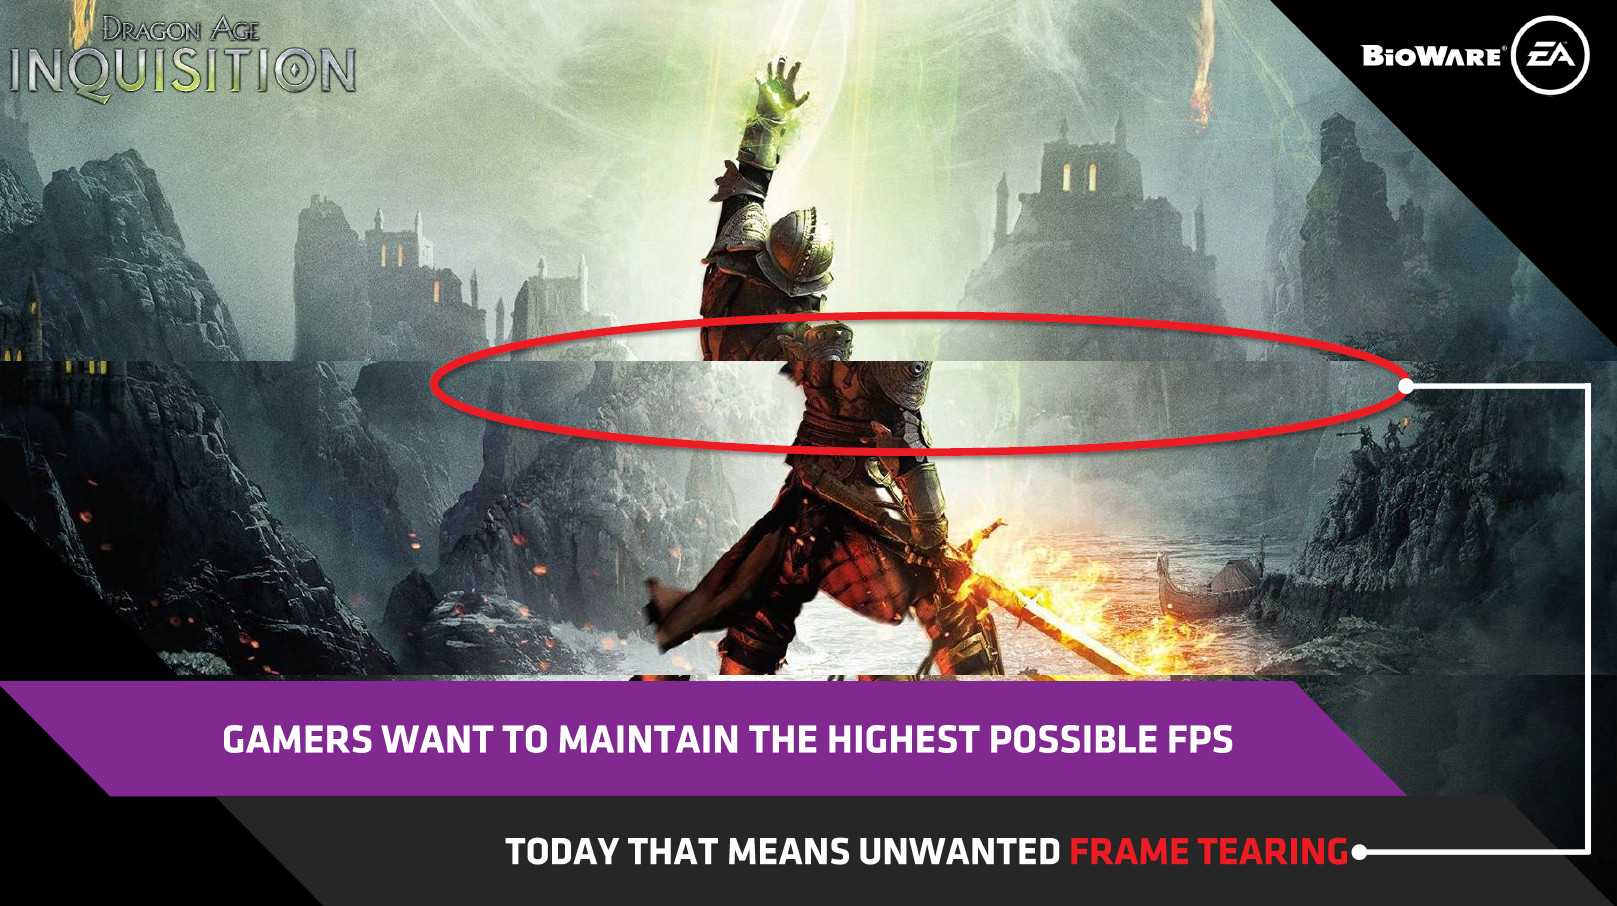 FreeSync And Similar Frame Synchronisation Technologies Are Born From The  Same Underlying Issue U2013 A Mismatch Between The Normally Fixed Refresh Rate  Of A ...